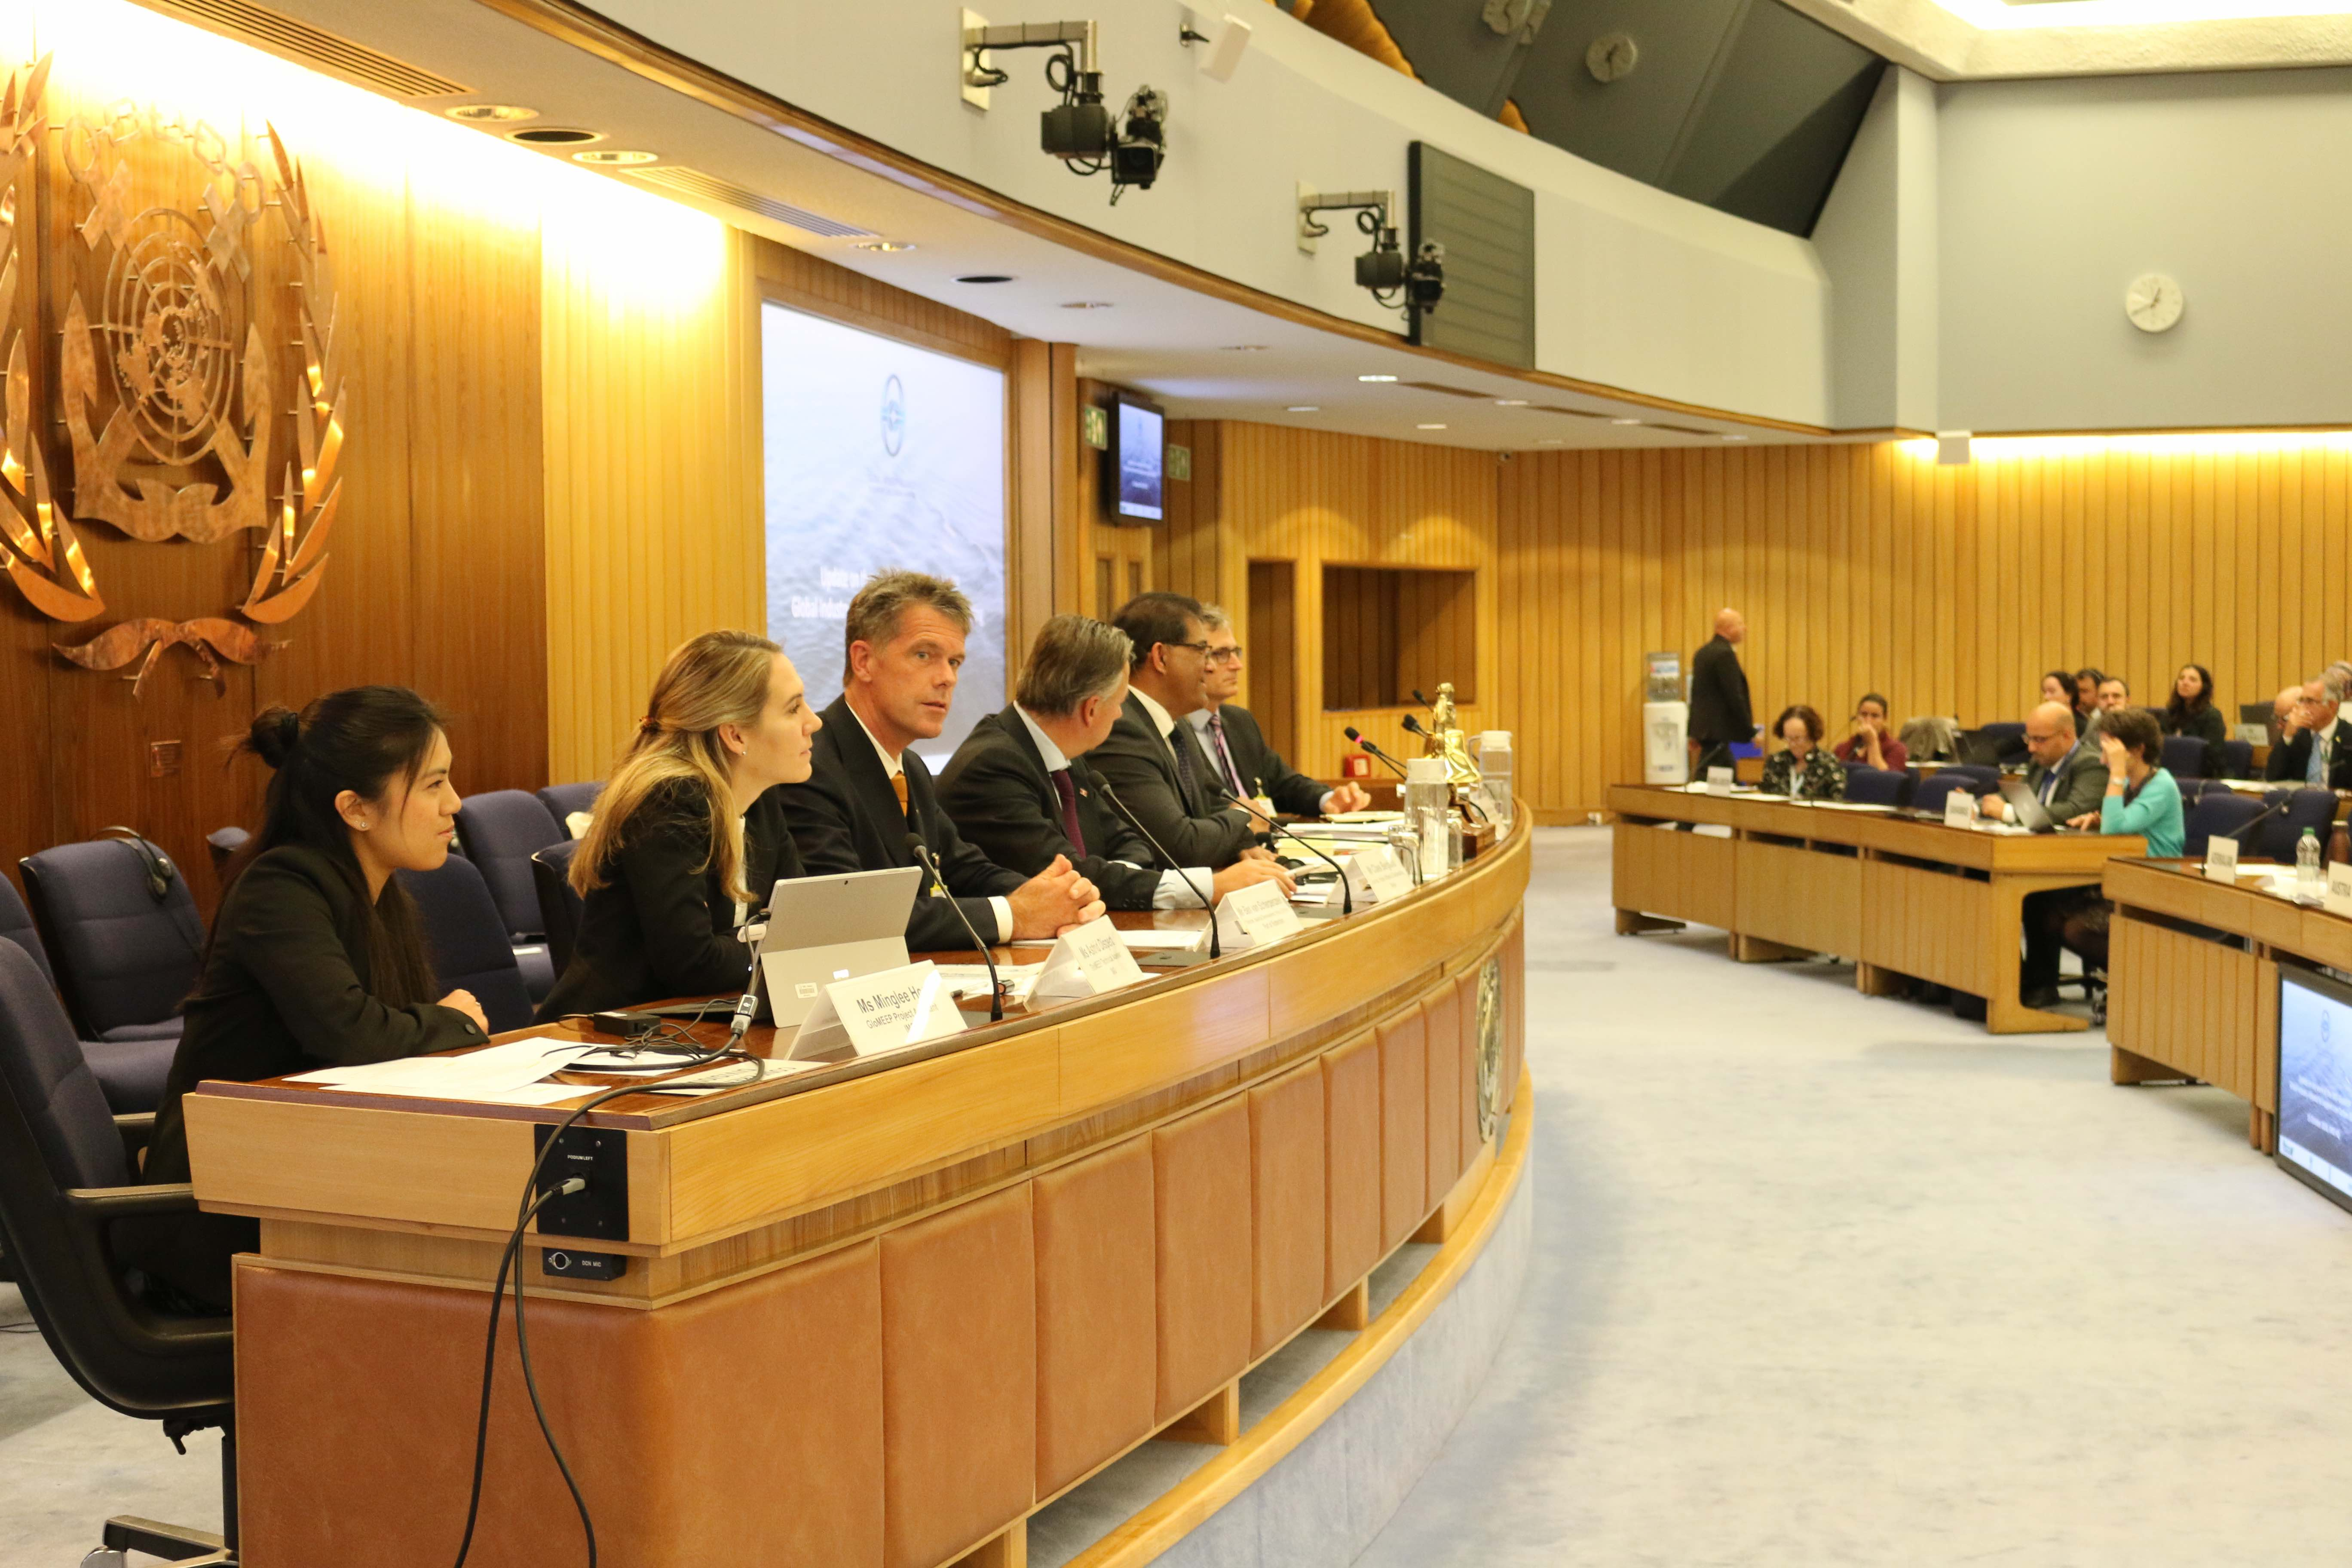 Port of Rotterdam/TNO joint presentation to IMO Committee meeting in London last week